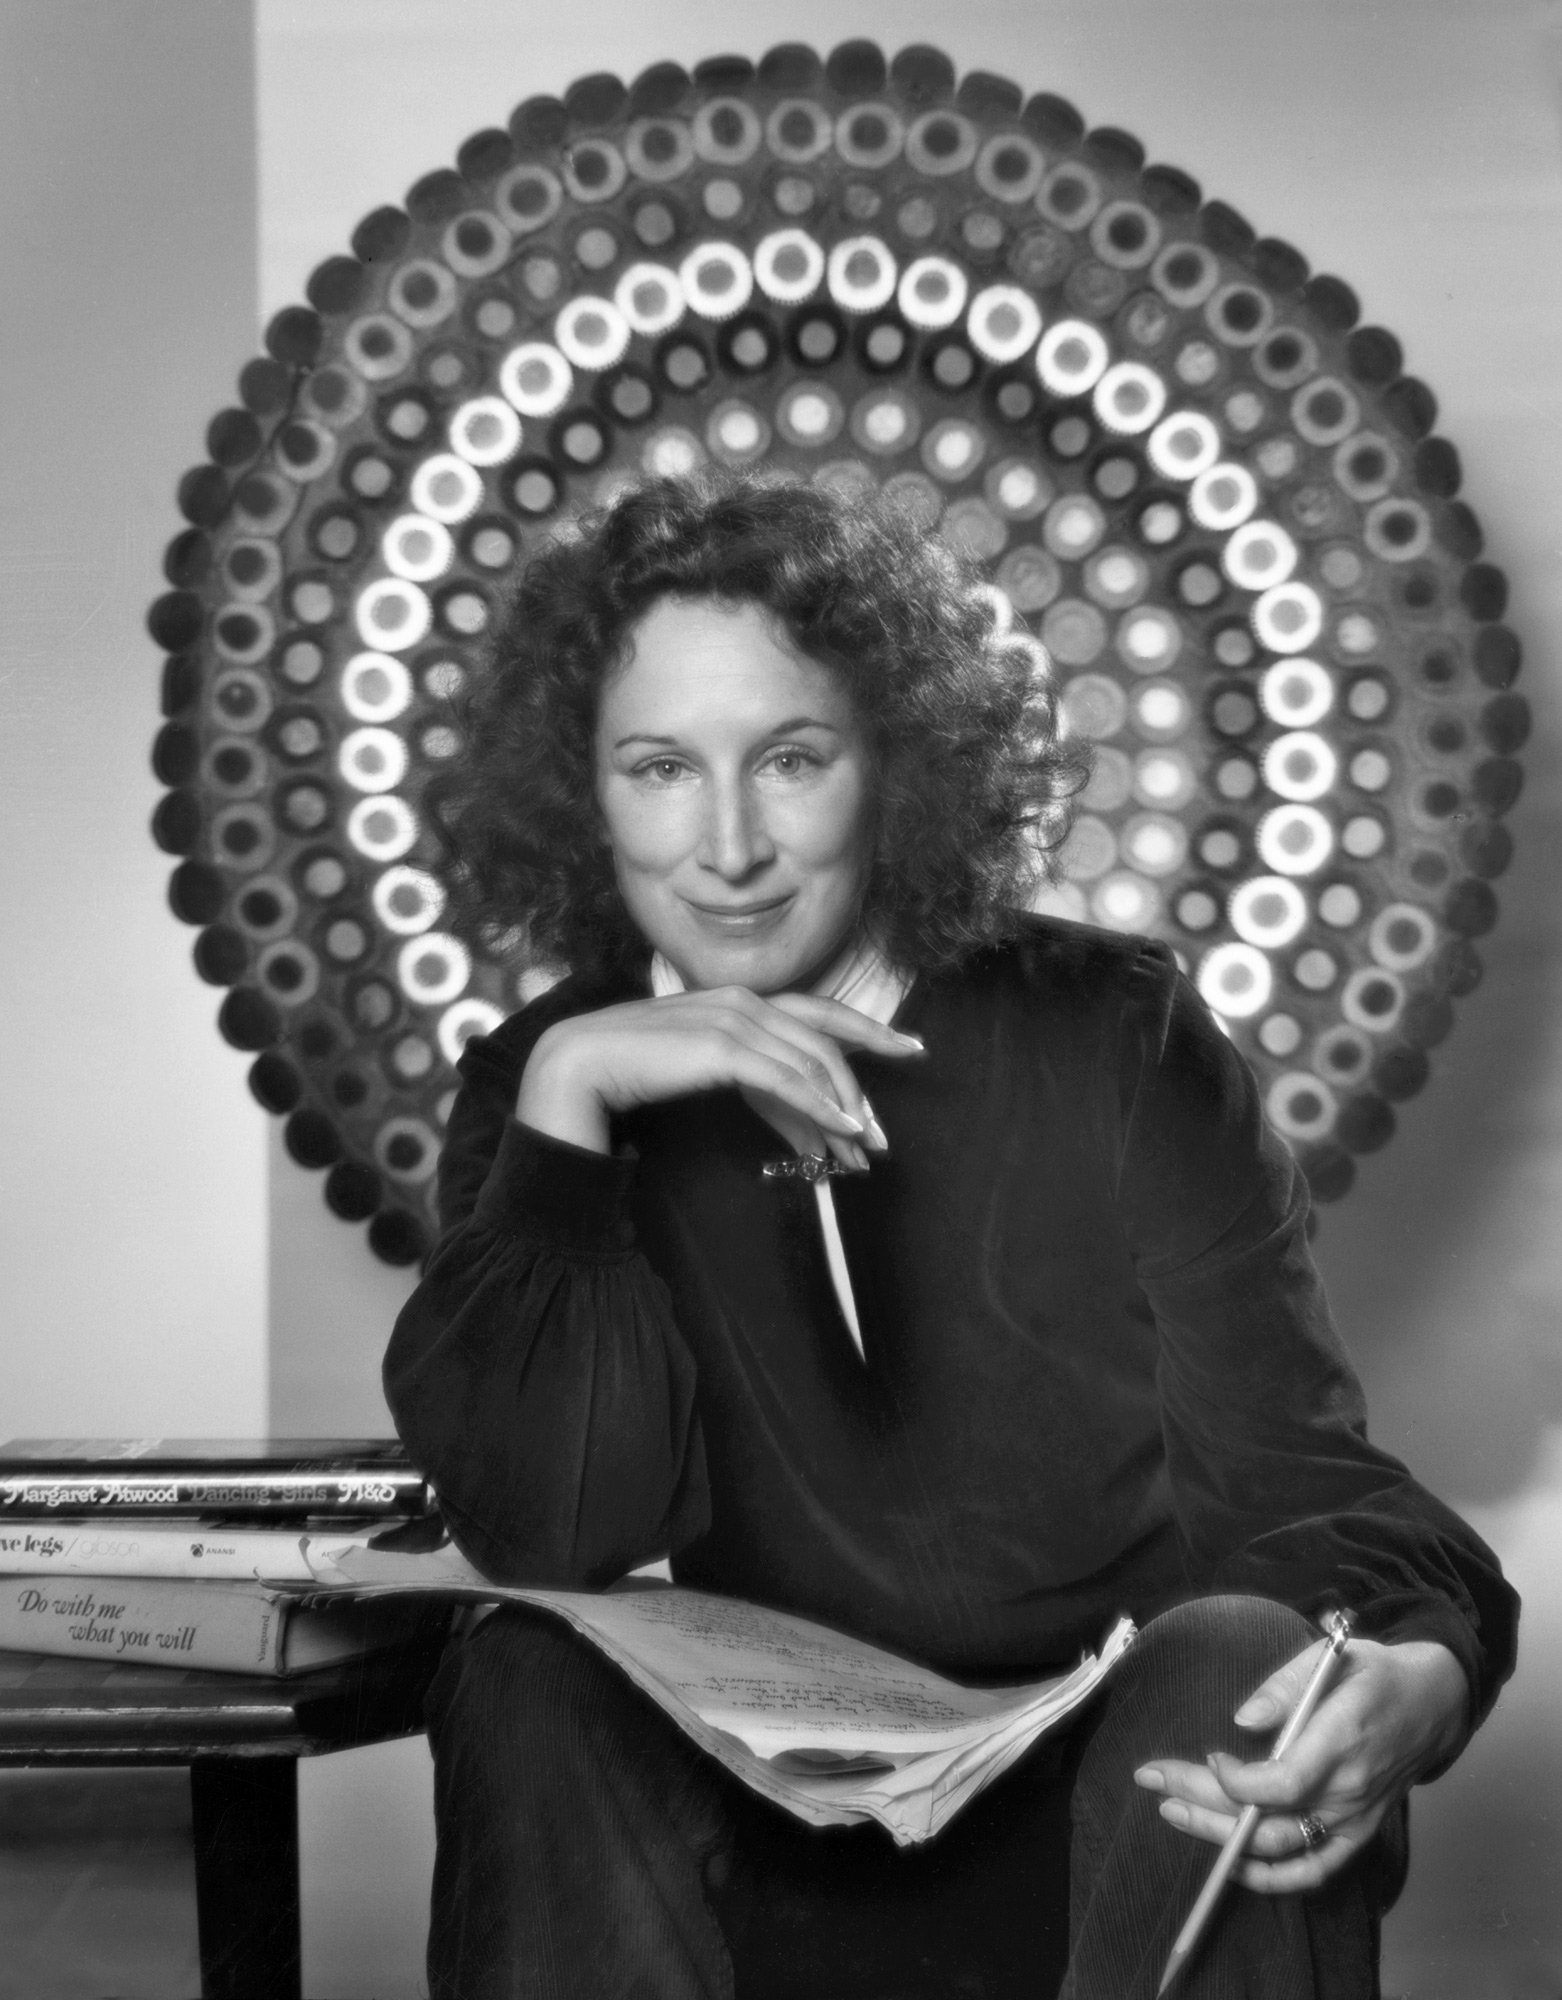 Margaret Atwood: The Testaments – Yousuf Karsh